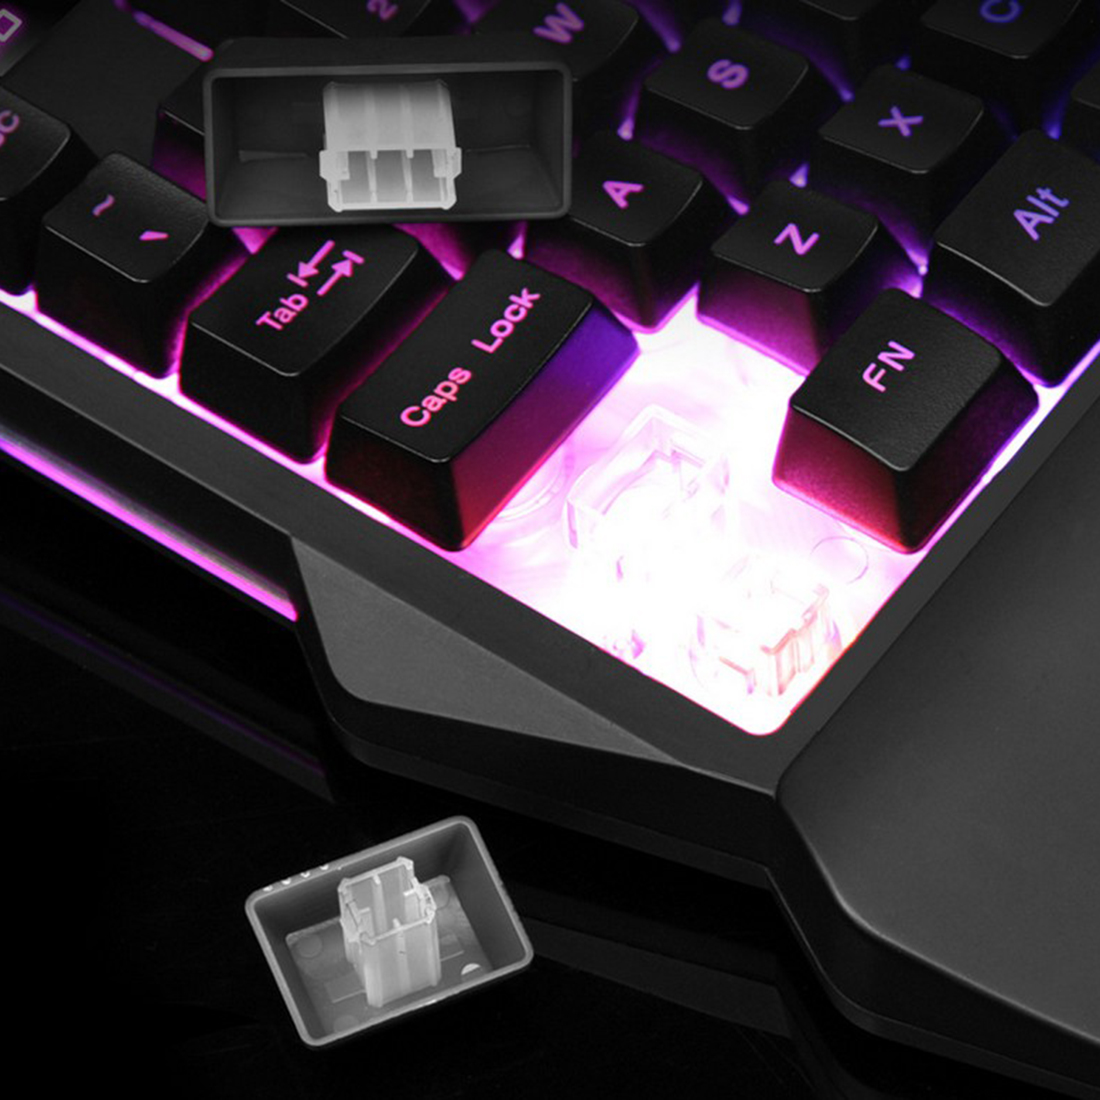 G30 One-handed Mechanical Gaming Keyboard 35-key RGB Keyboard for Windows - Mac PC Gamers - 7 LED Backlight Version + RGB Wired Mouse Black